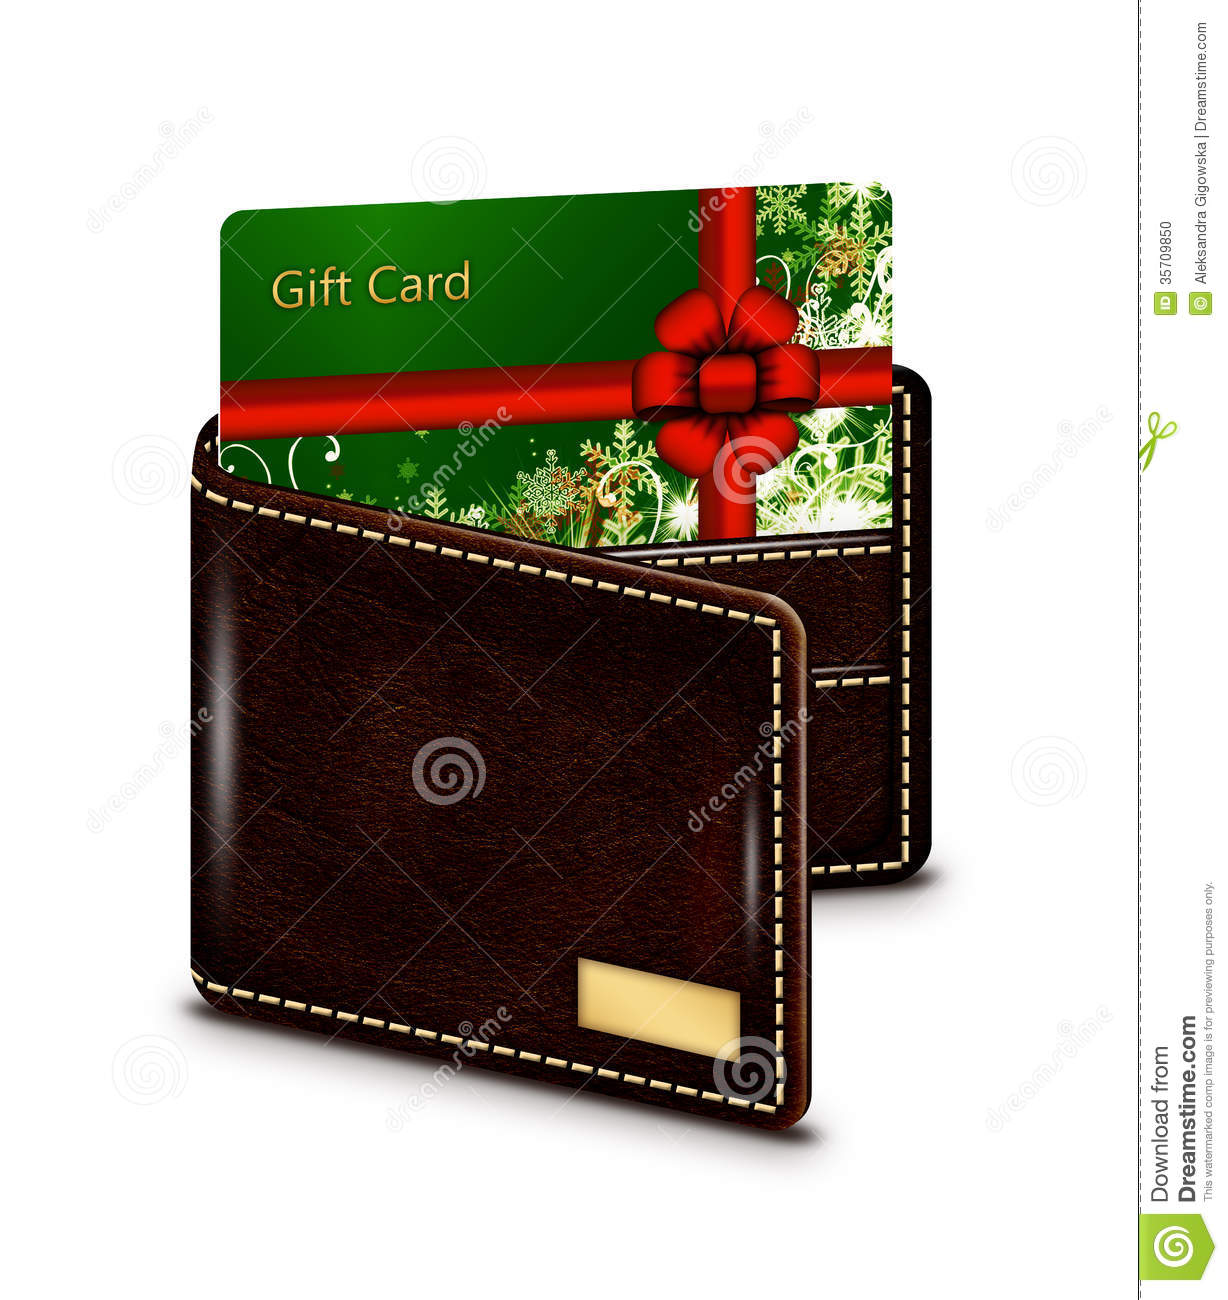 gift card in wallet over white background stock photo